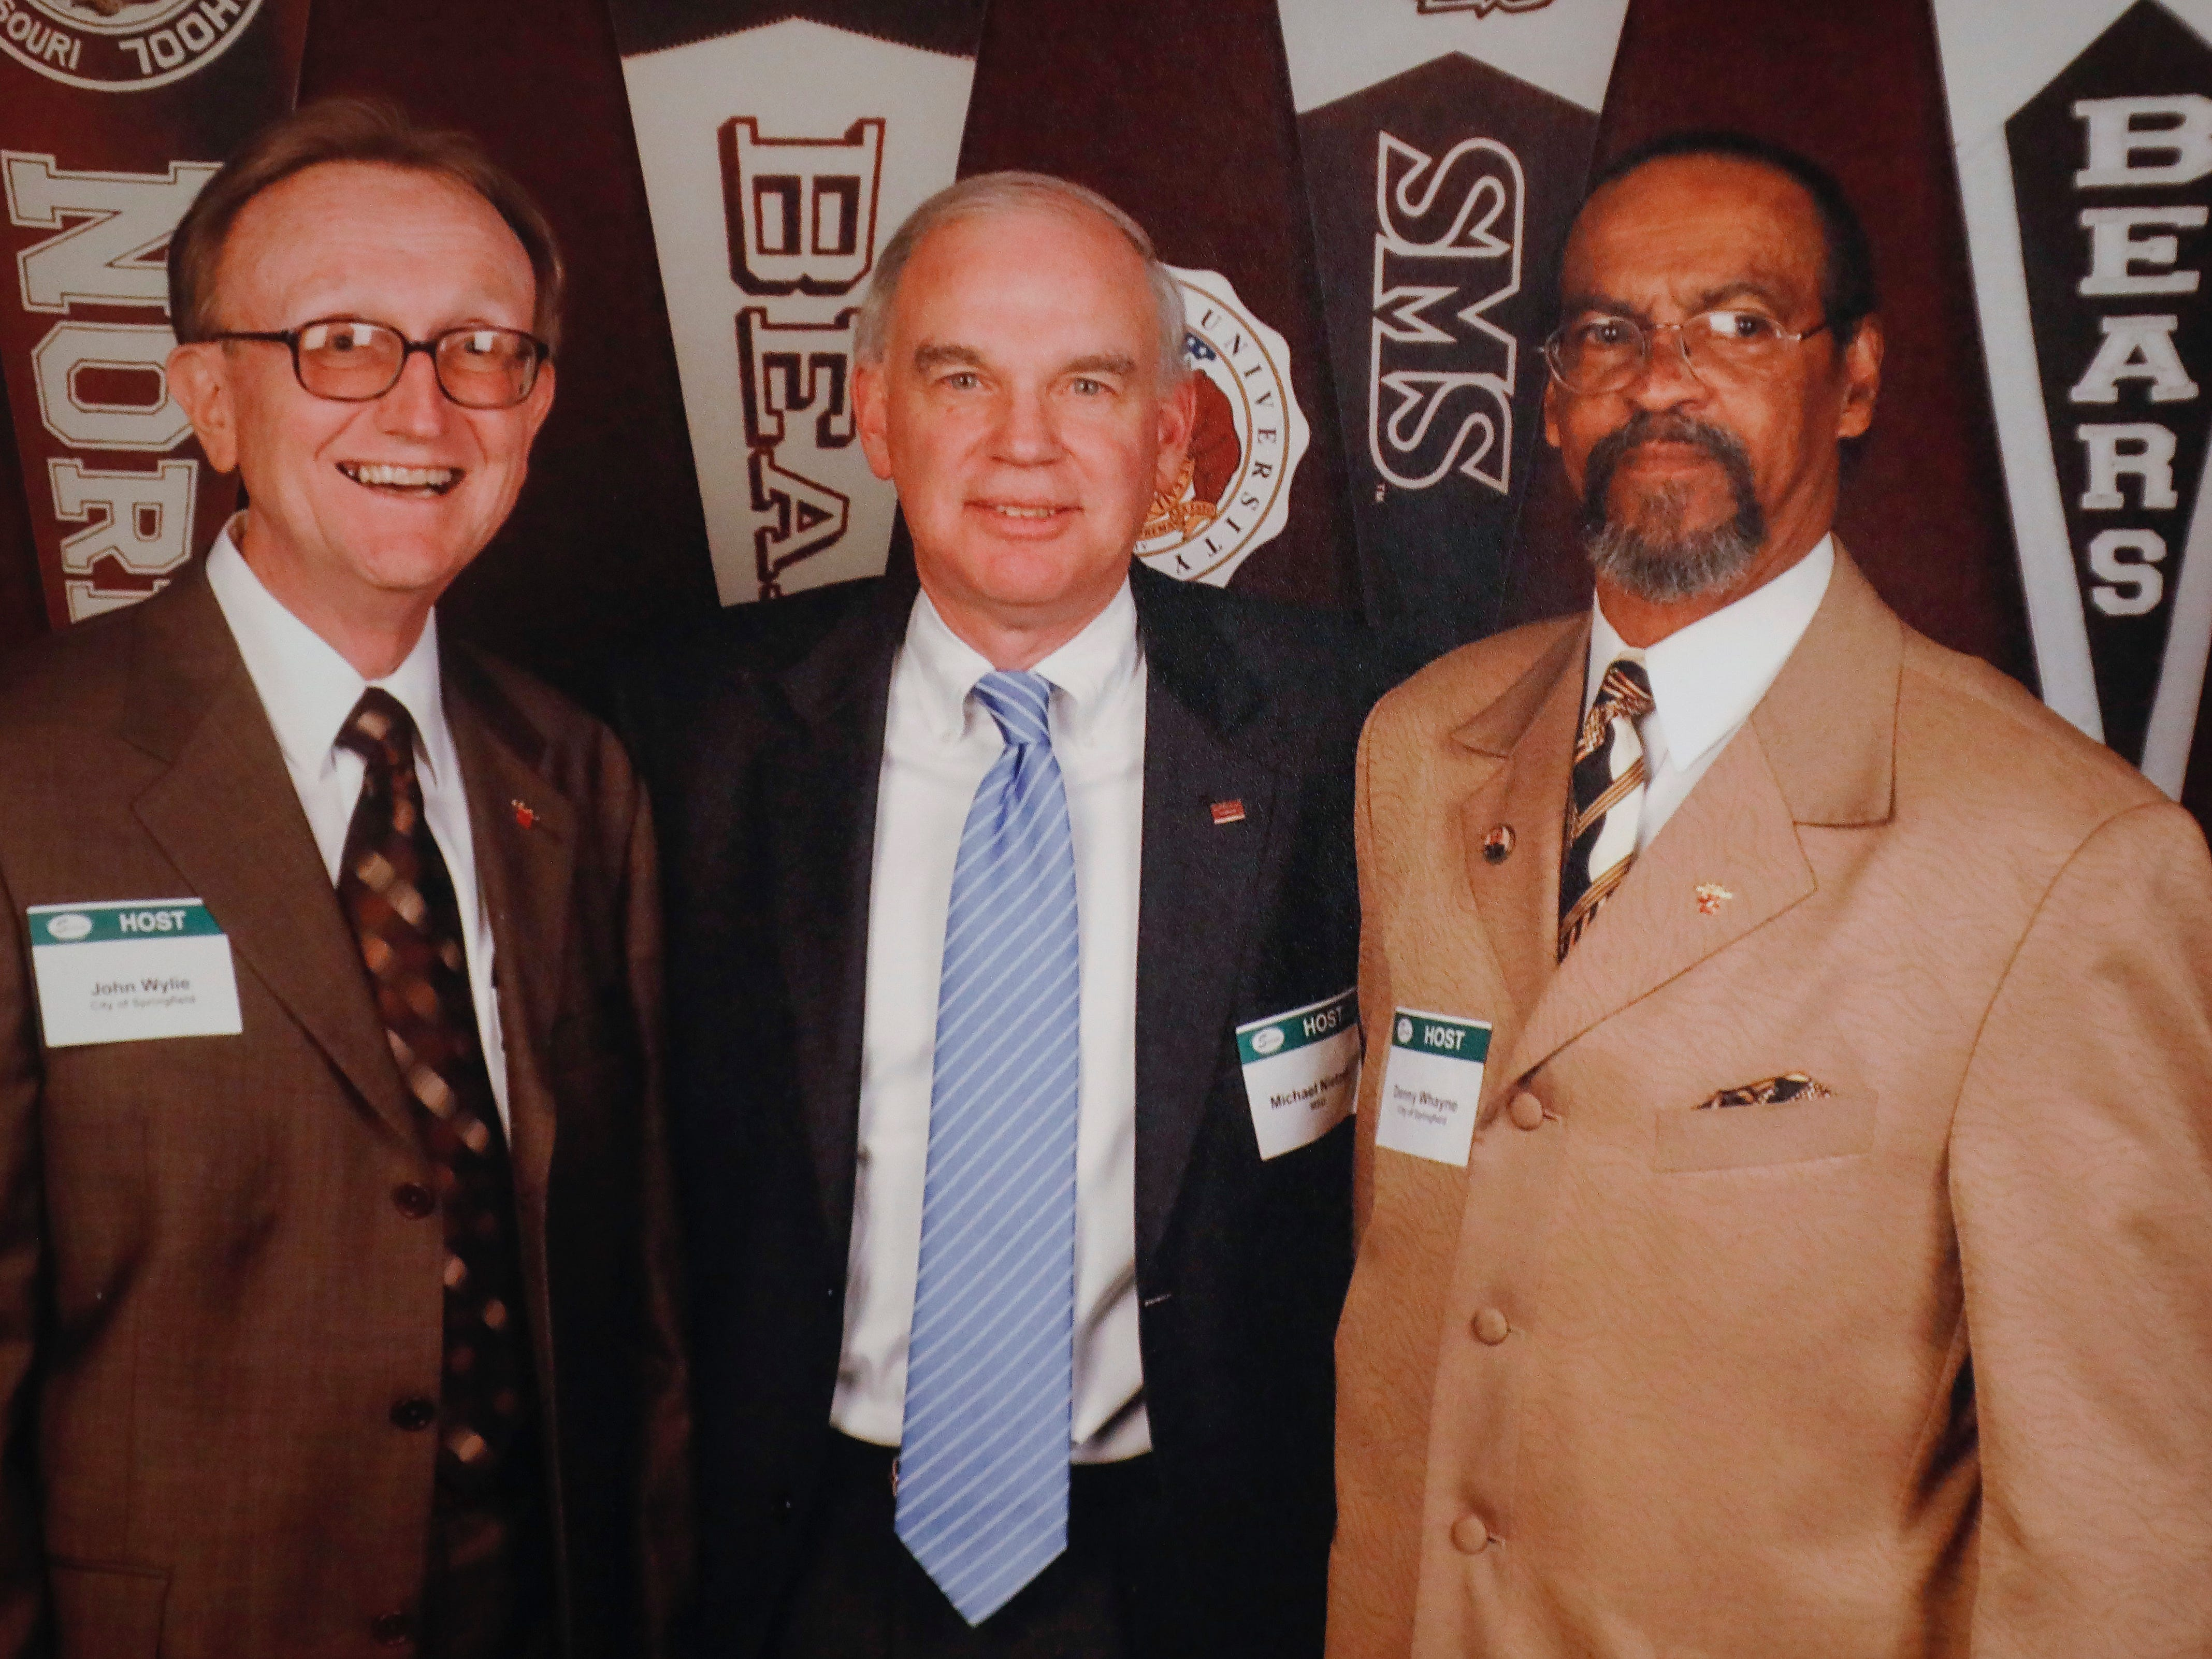 Denny Whayne, right, with John Wylie, left, and former Missouri State President Michael Nietzel.